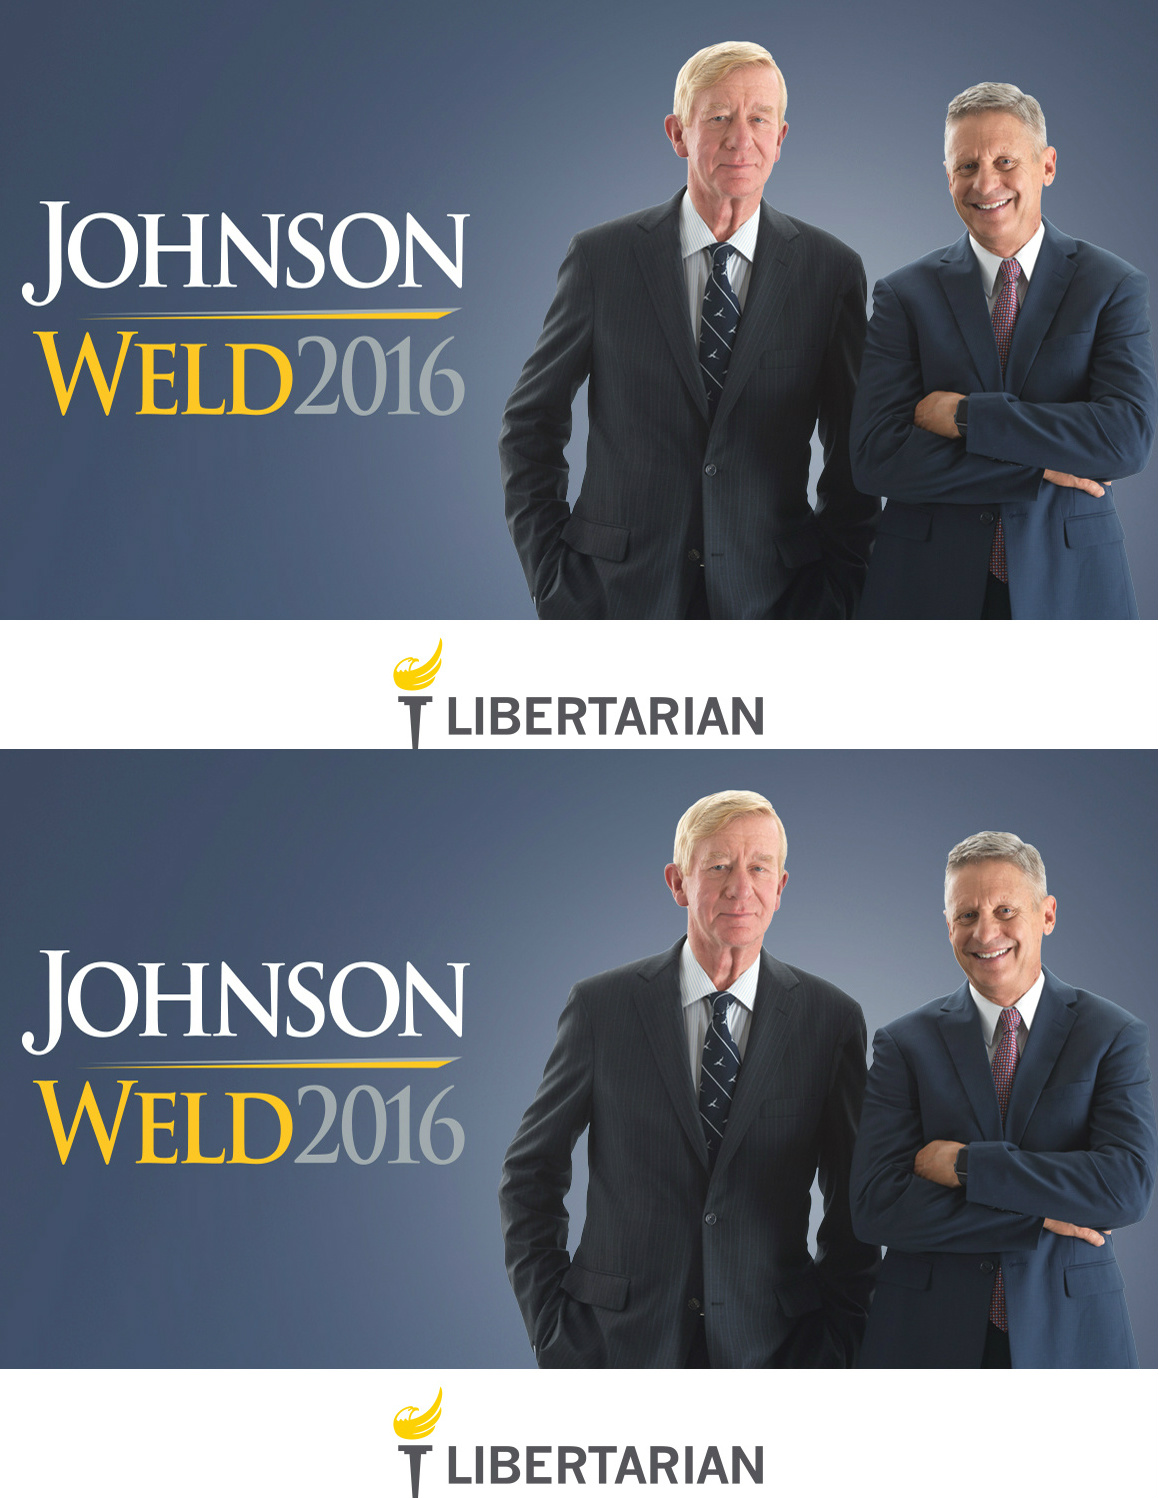 2016 Johnson Weld Image 2x